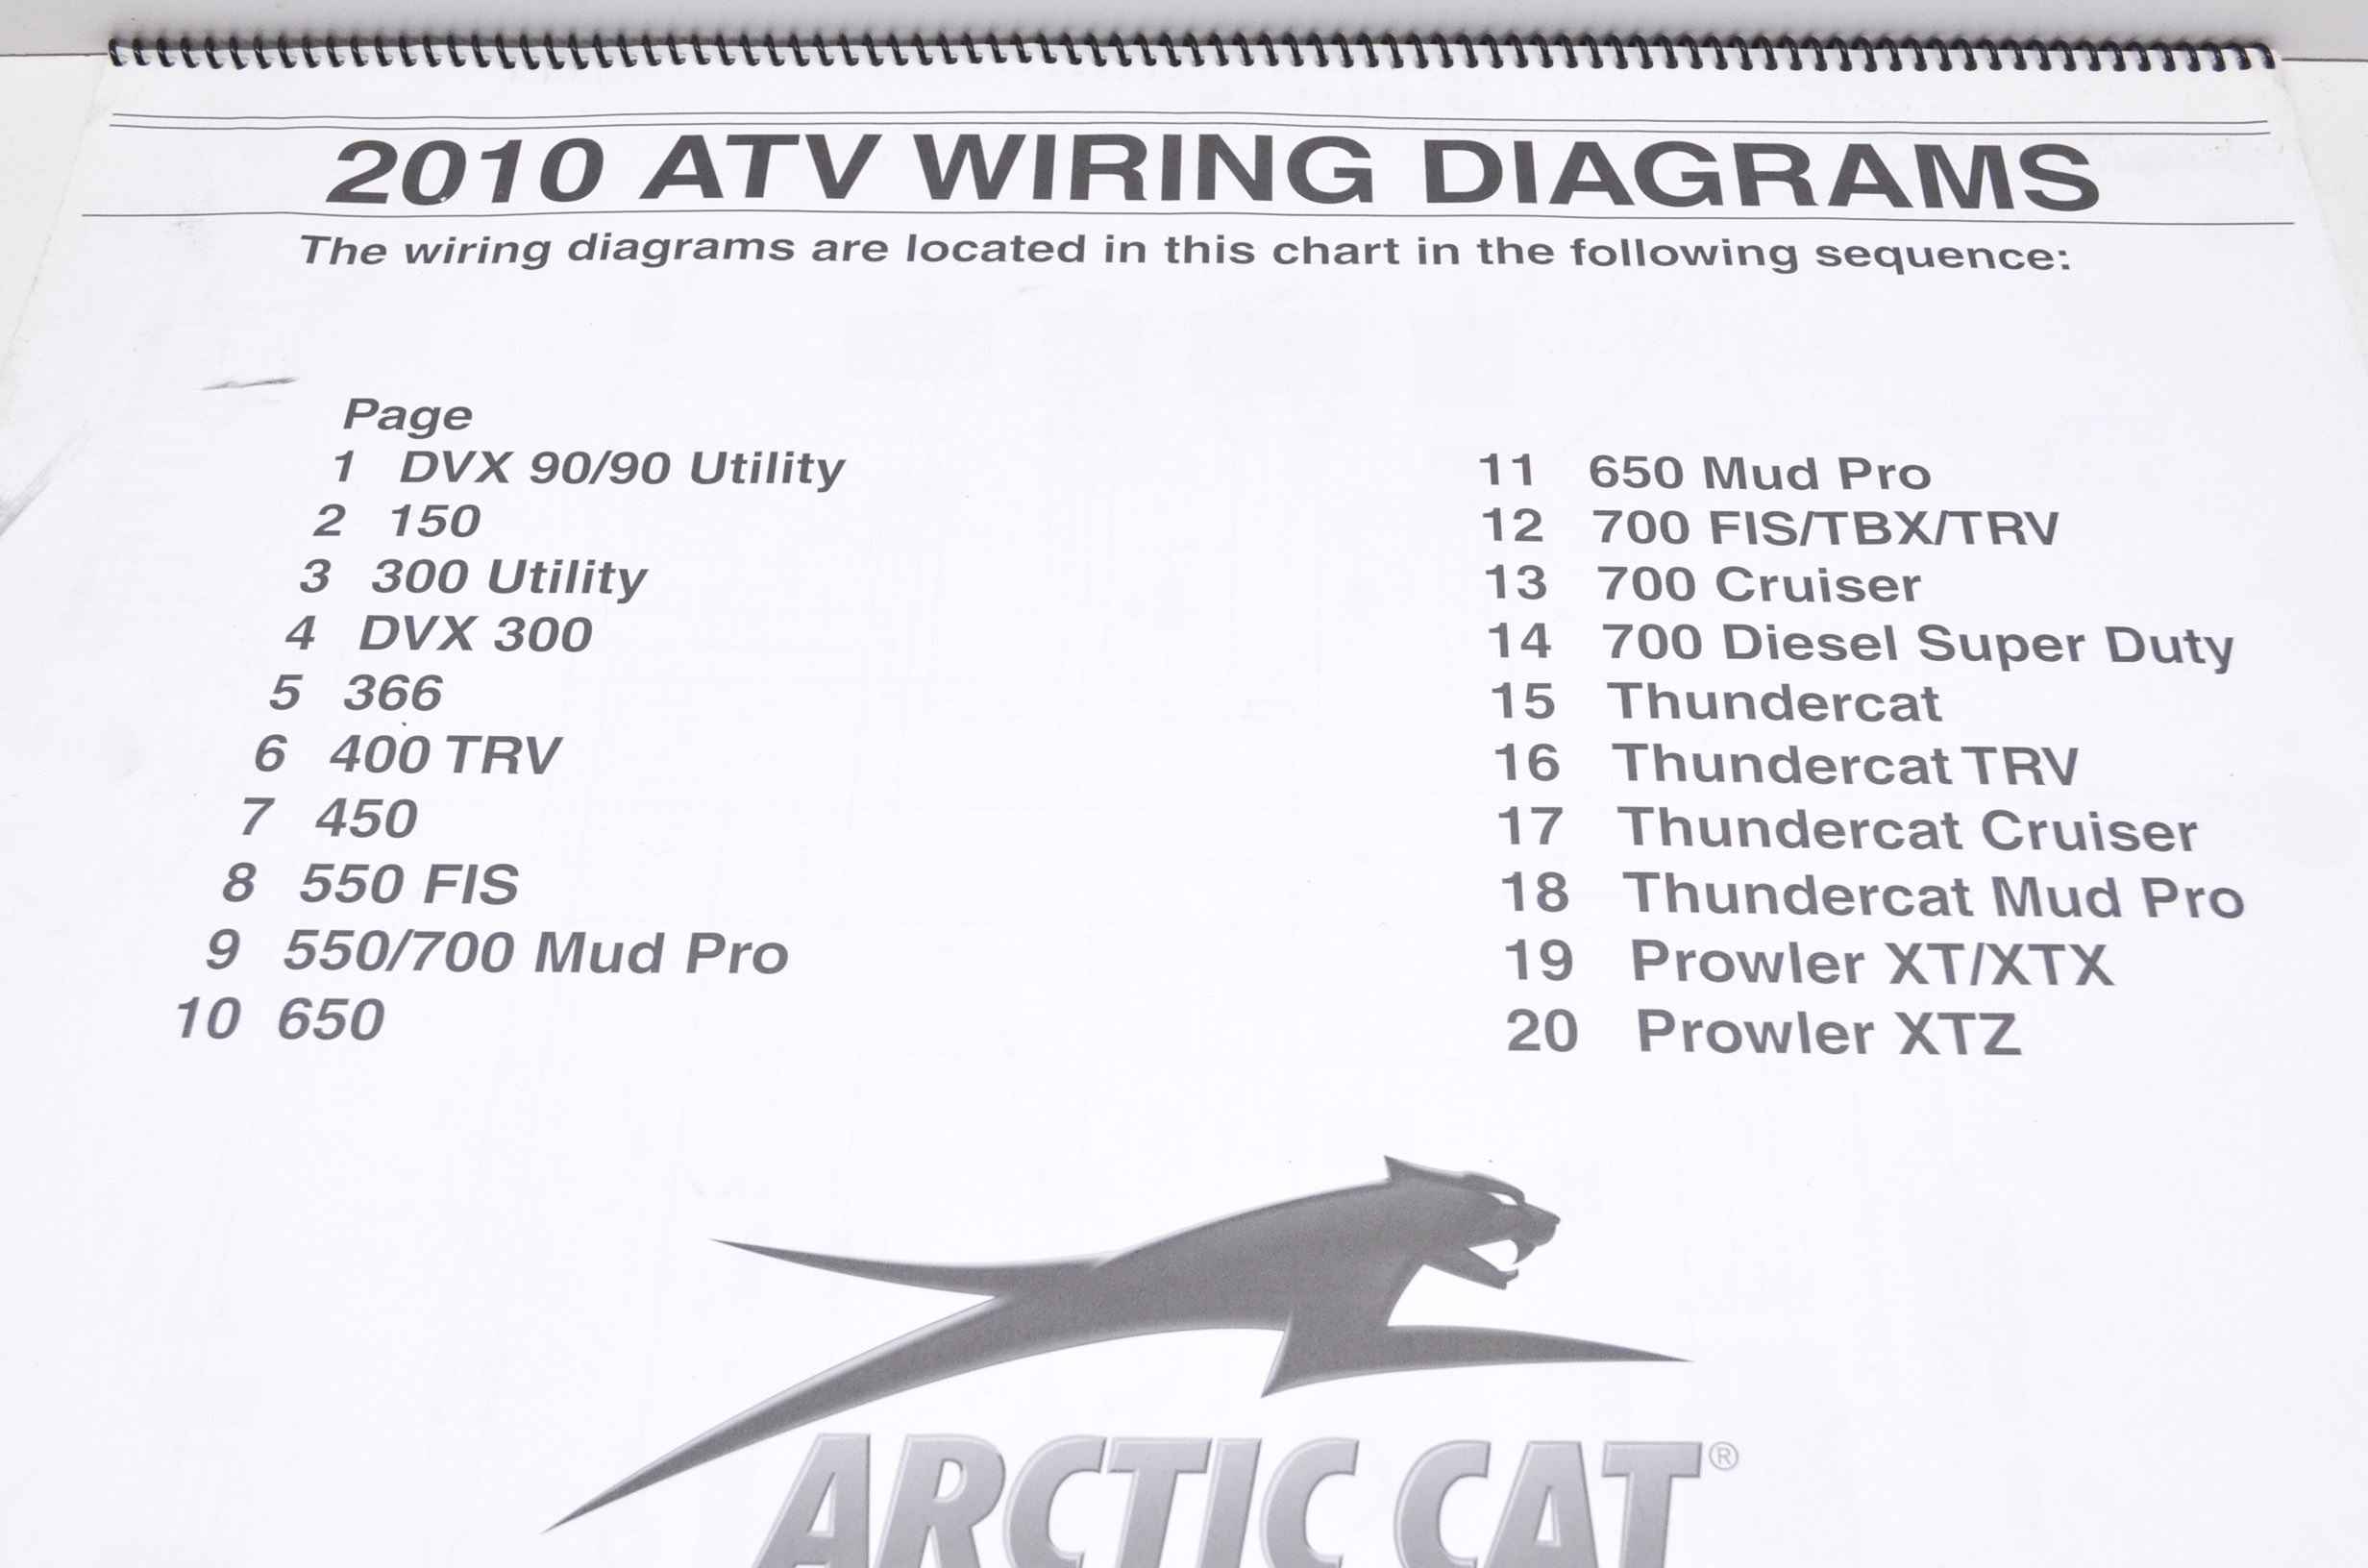 Arctic Cat 375 Atv Wiring Diagram Reveolution Of 90 Dvx 2007 Carb Parts Schematic Diagrams Rh Ogmconsulting Co 03 F5 Electrical 1999 454 4x4